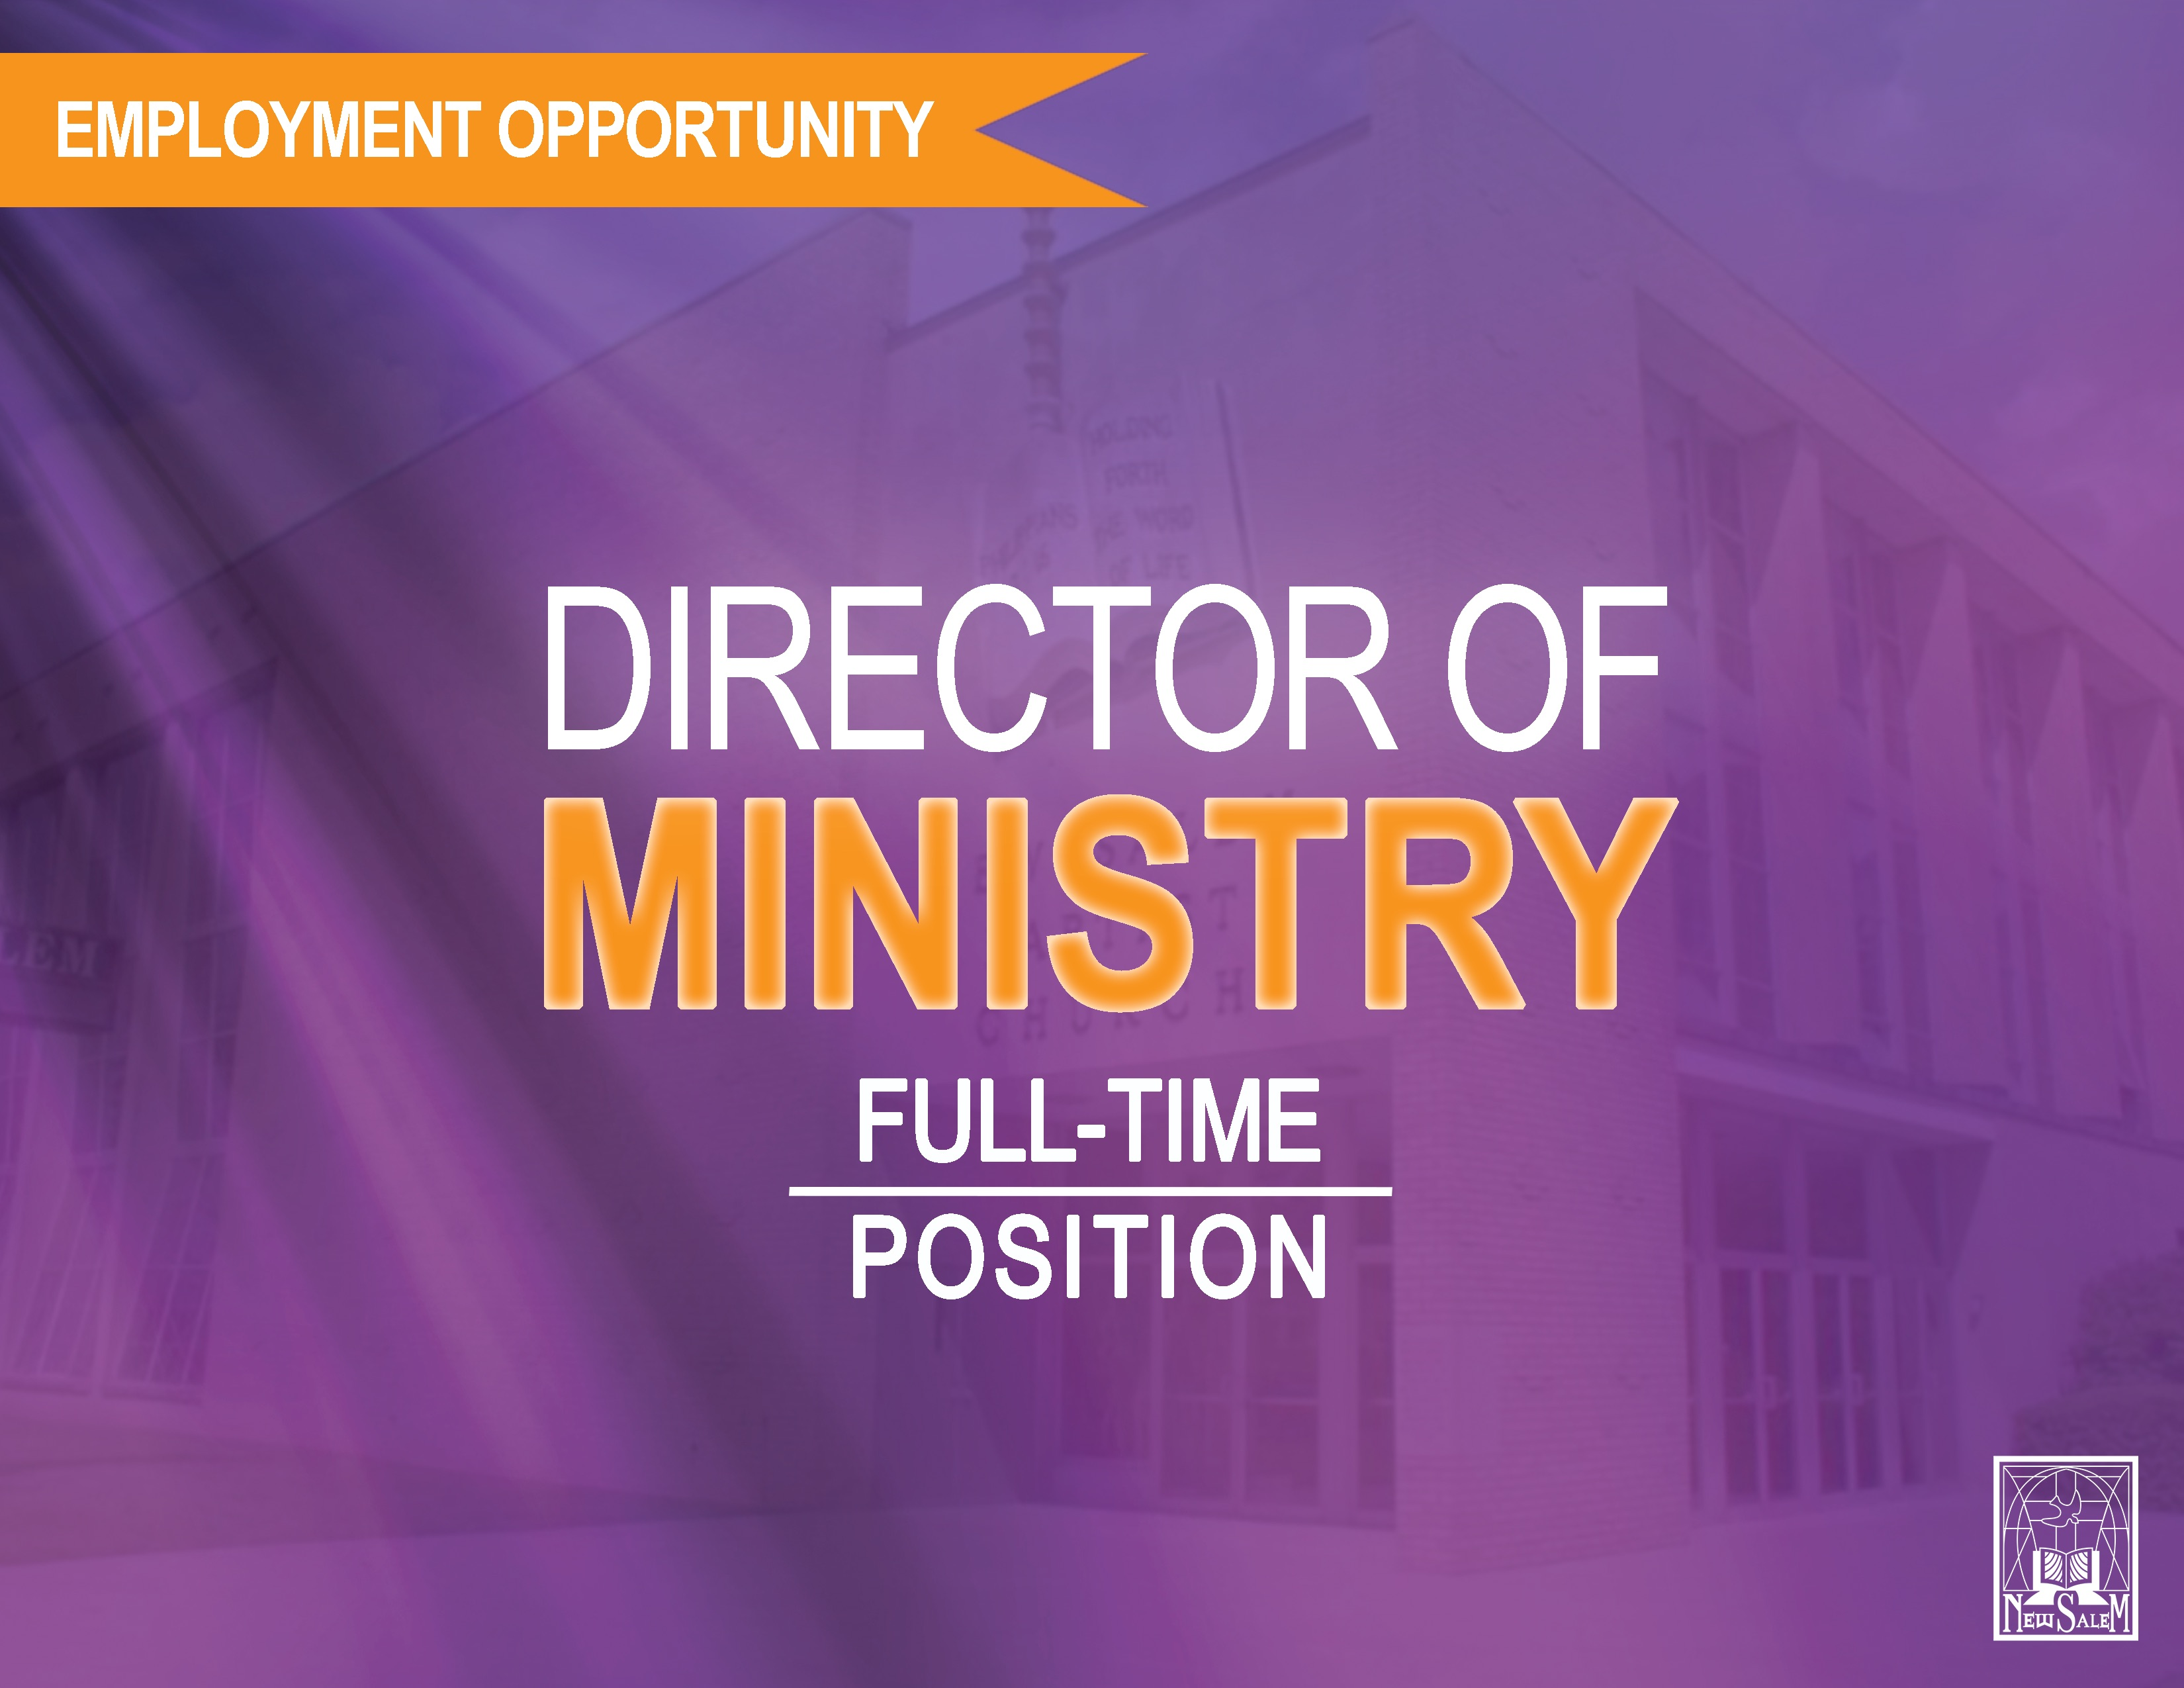 Director of Ministry Employment Opportunity